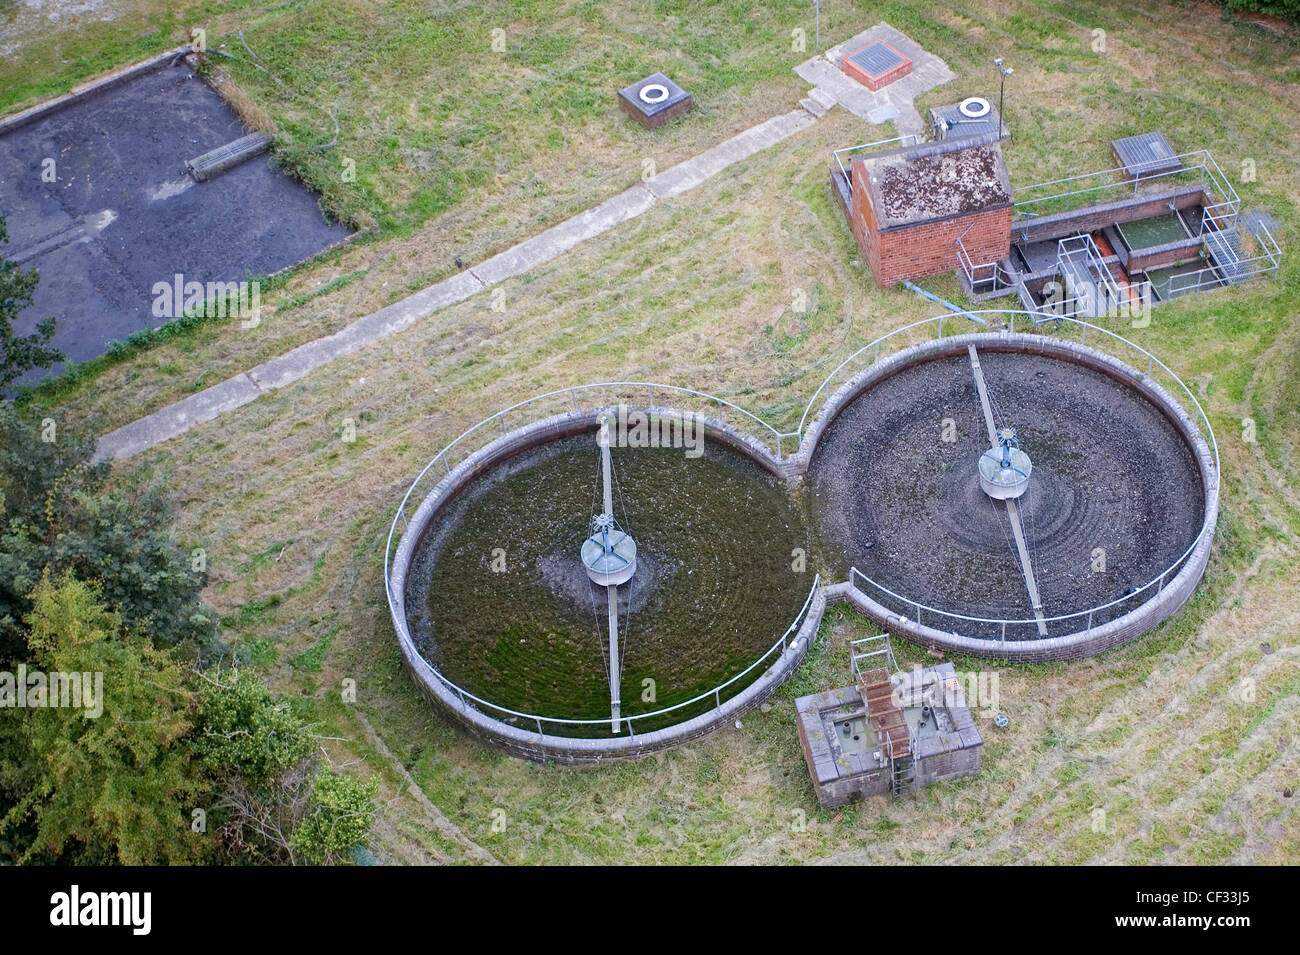 Rotary distributors and settling tanks at a sewage treatment works, viewed from the Pontcysyllte Aqueduct. - Stock Image